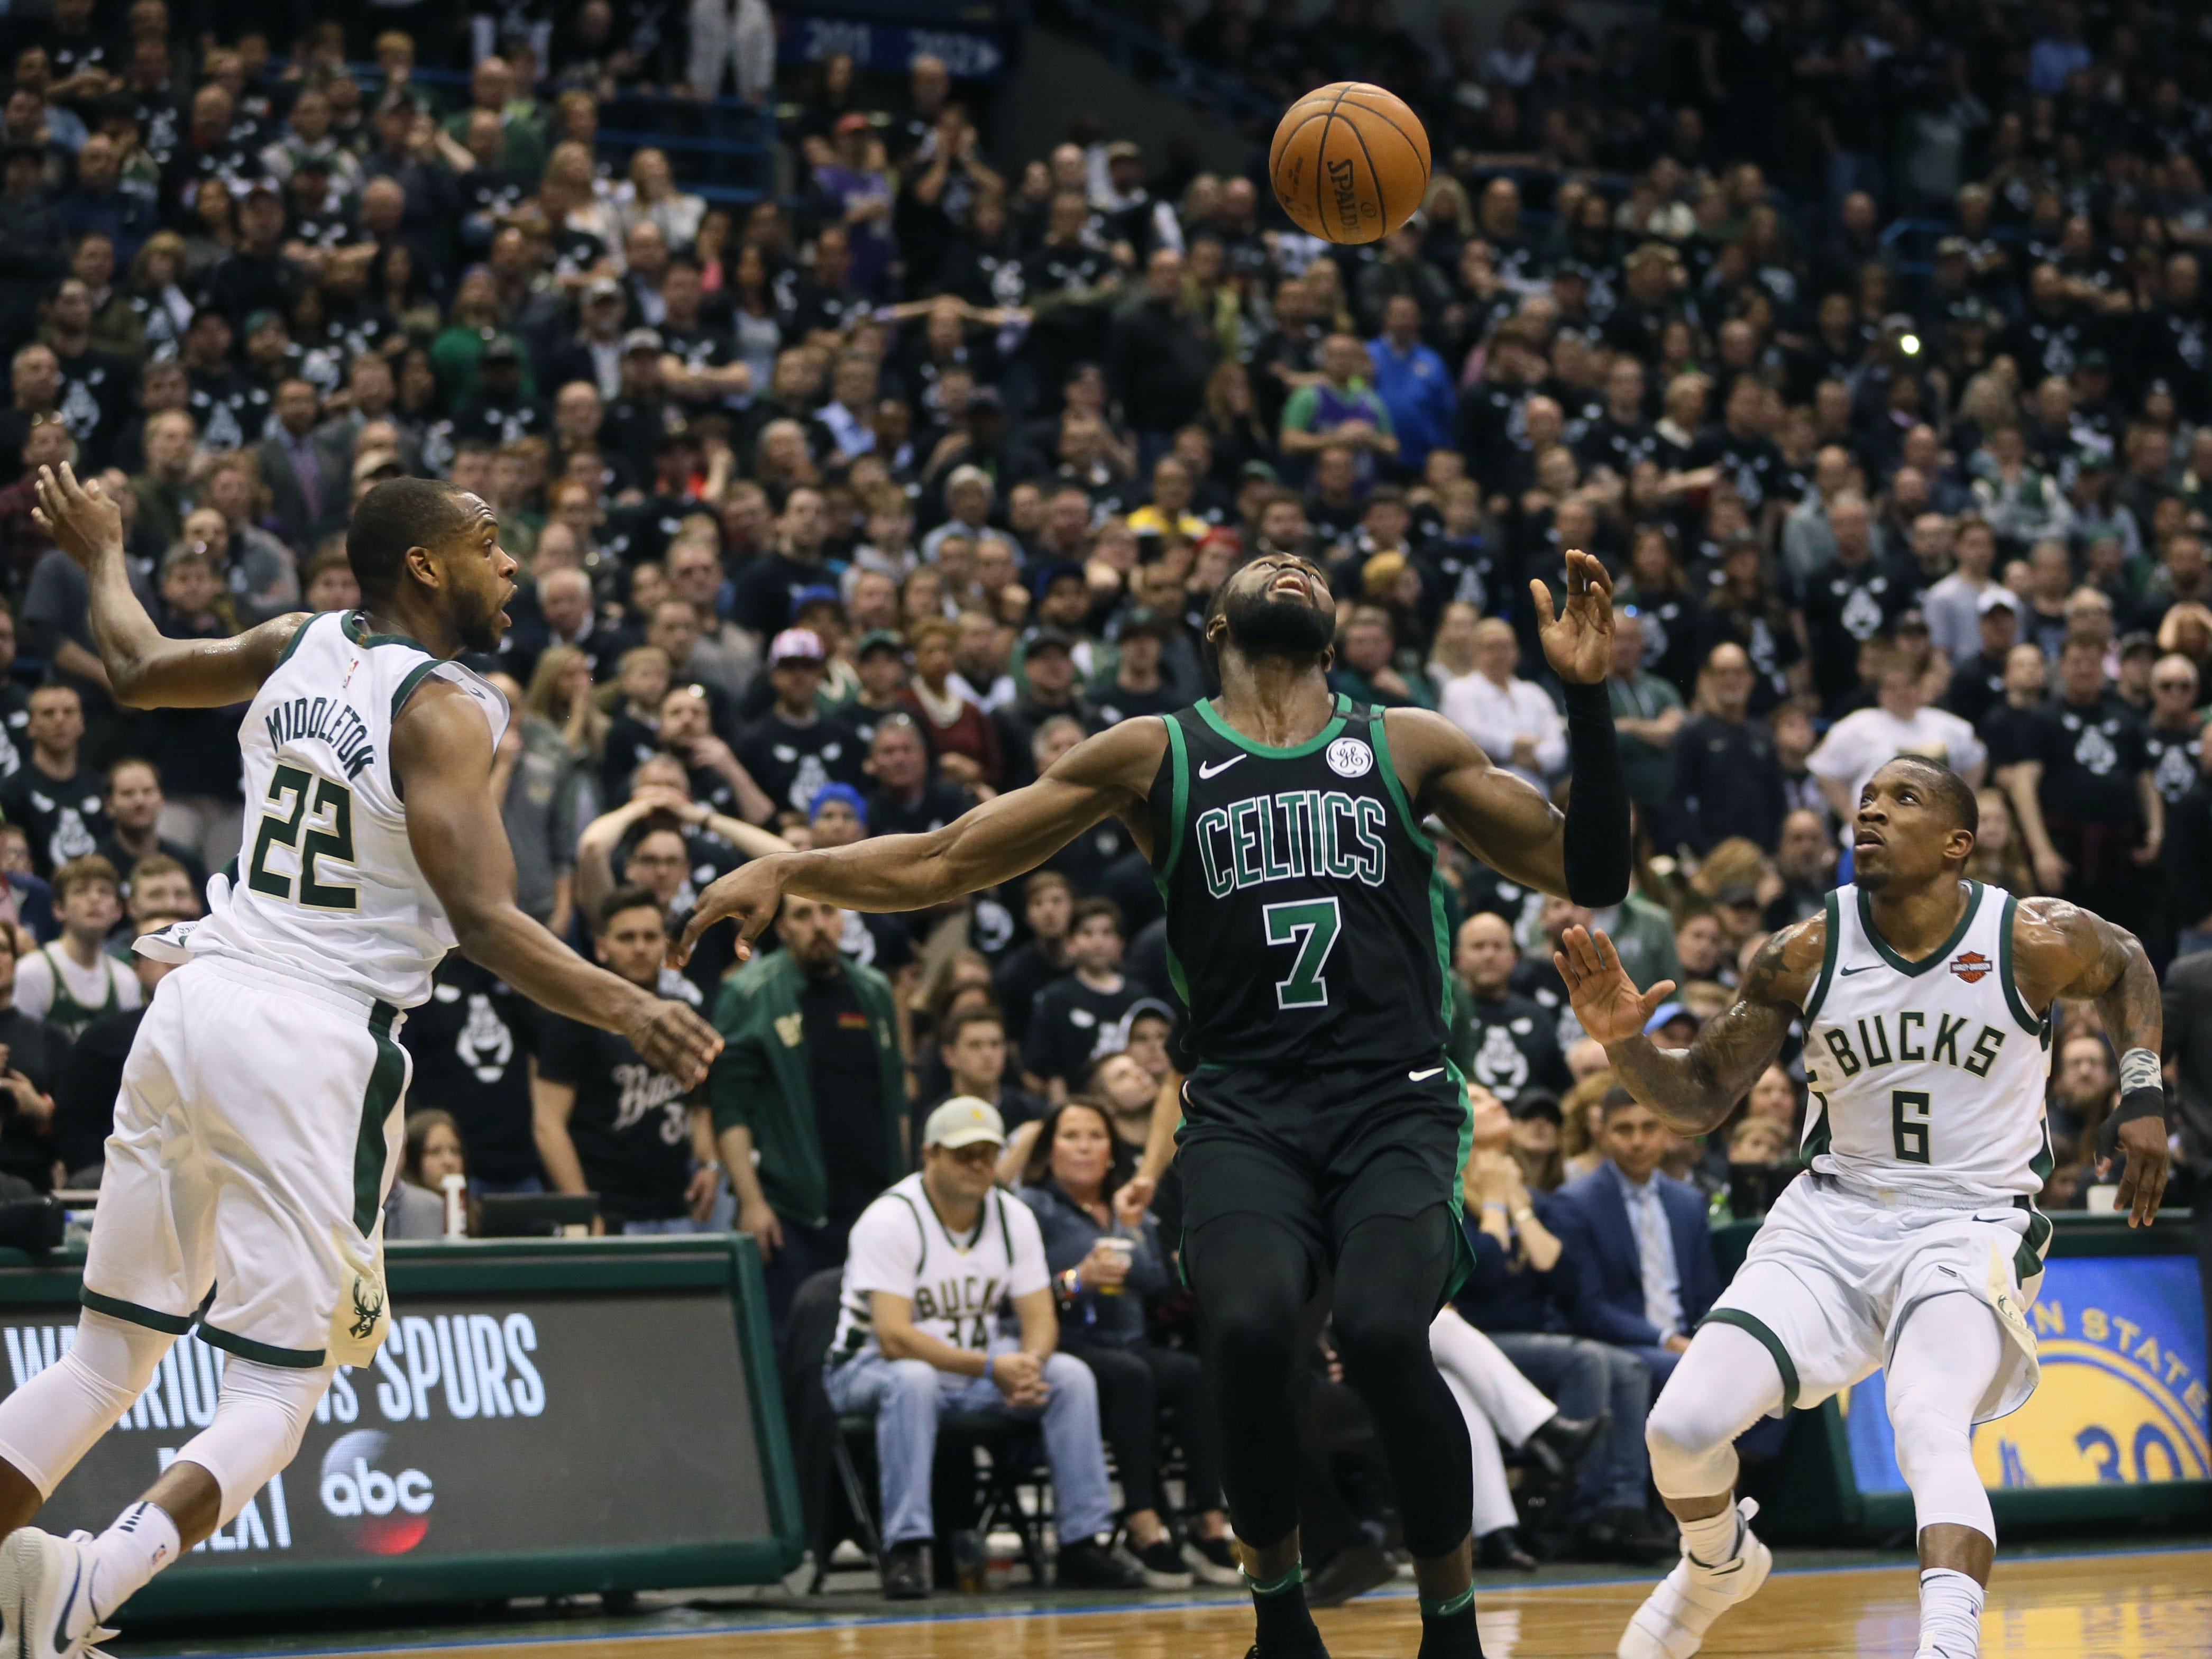 2018: Bucks Khris Middleton (left) and Eric Bledsoe (right) move in on the ball as Boston Celtic Jaylen Brown loses control of it during a rebound during Game 4 of the first round of the Eastern Conference playoffs on April 22, 2018. The Bucks won Game 4, 104-102, but lost the series to the Celtics in seven games.